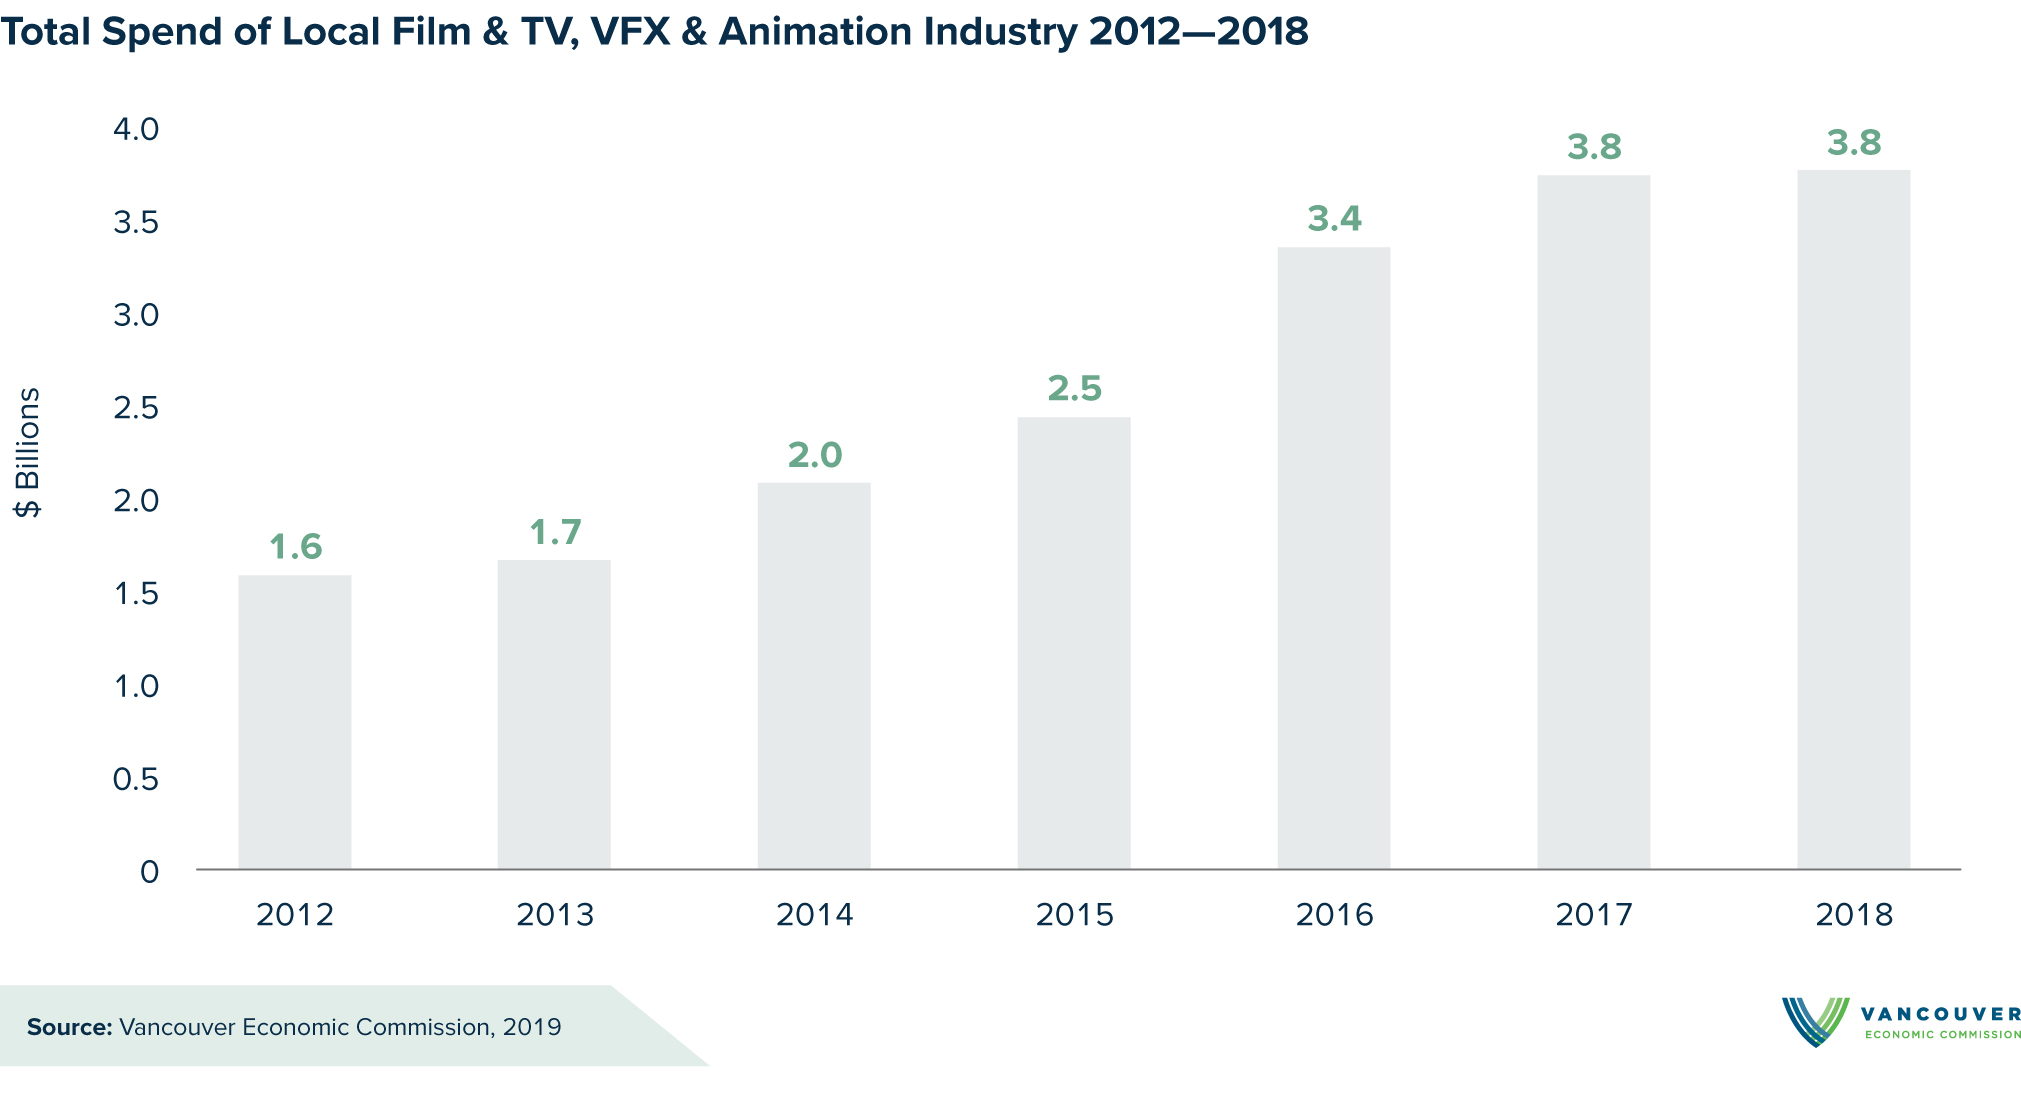 Vancouver Economic Commission reports Film & TV Industry paid $10.2 billion in local wages from 2012–2018